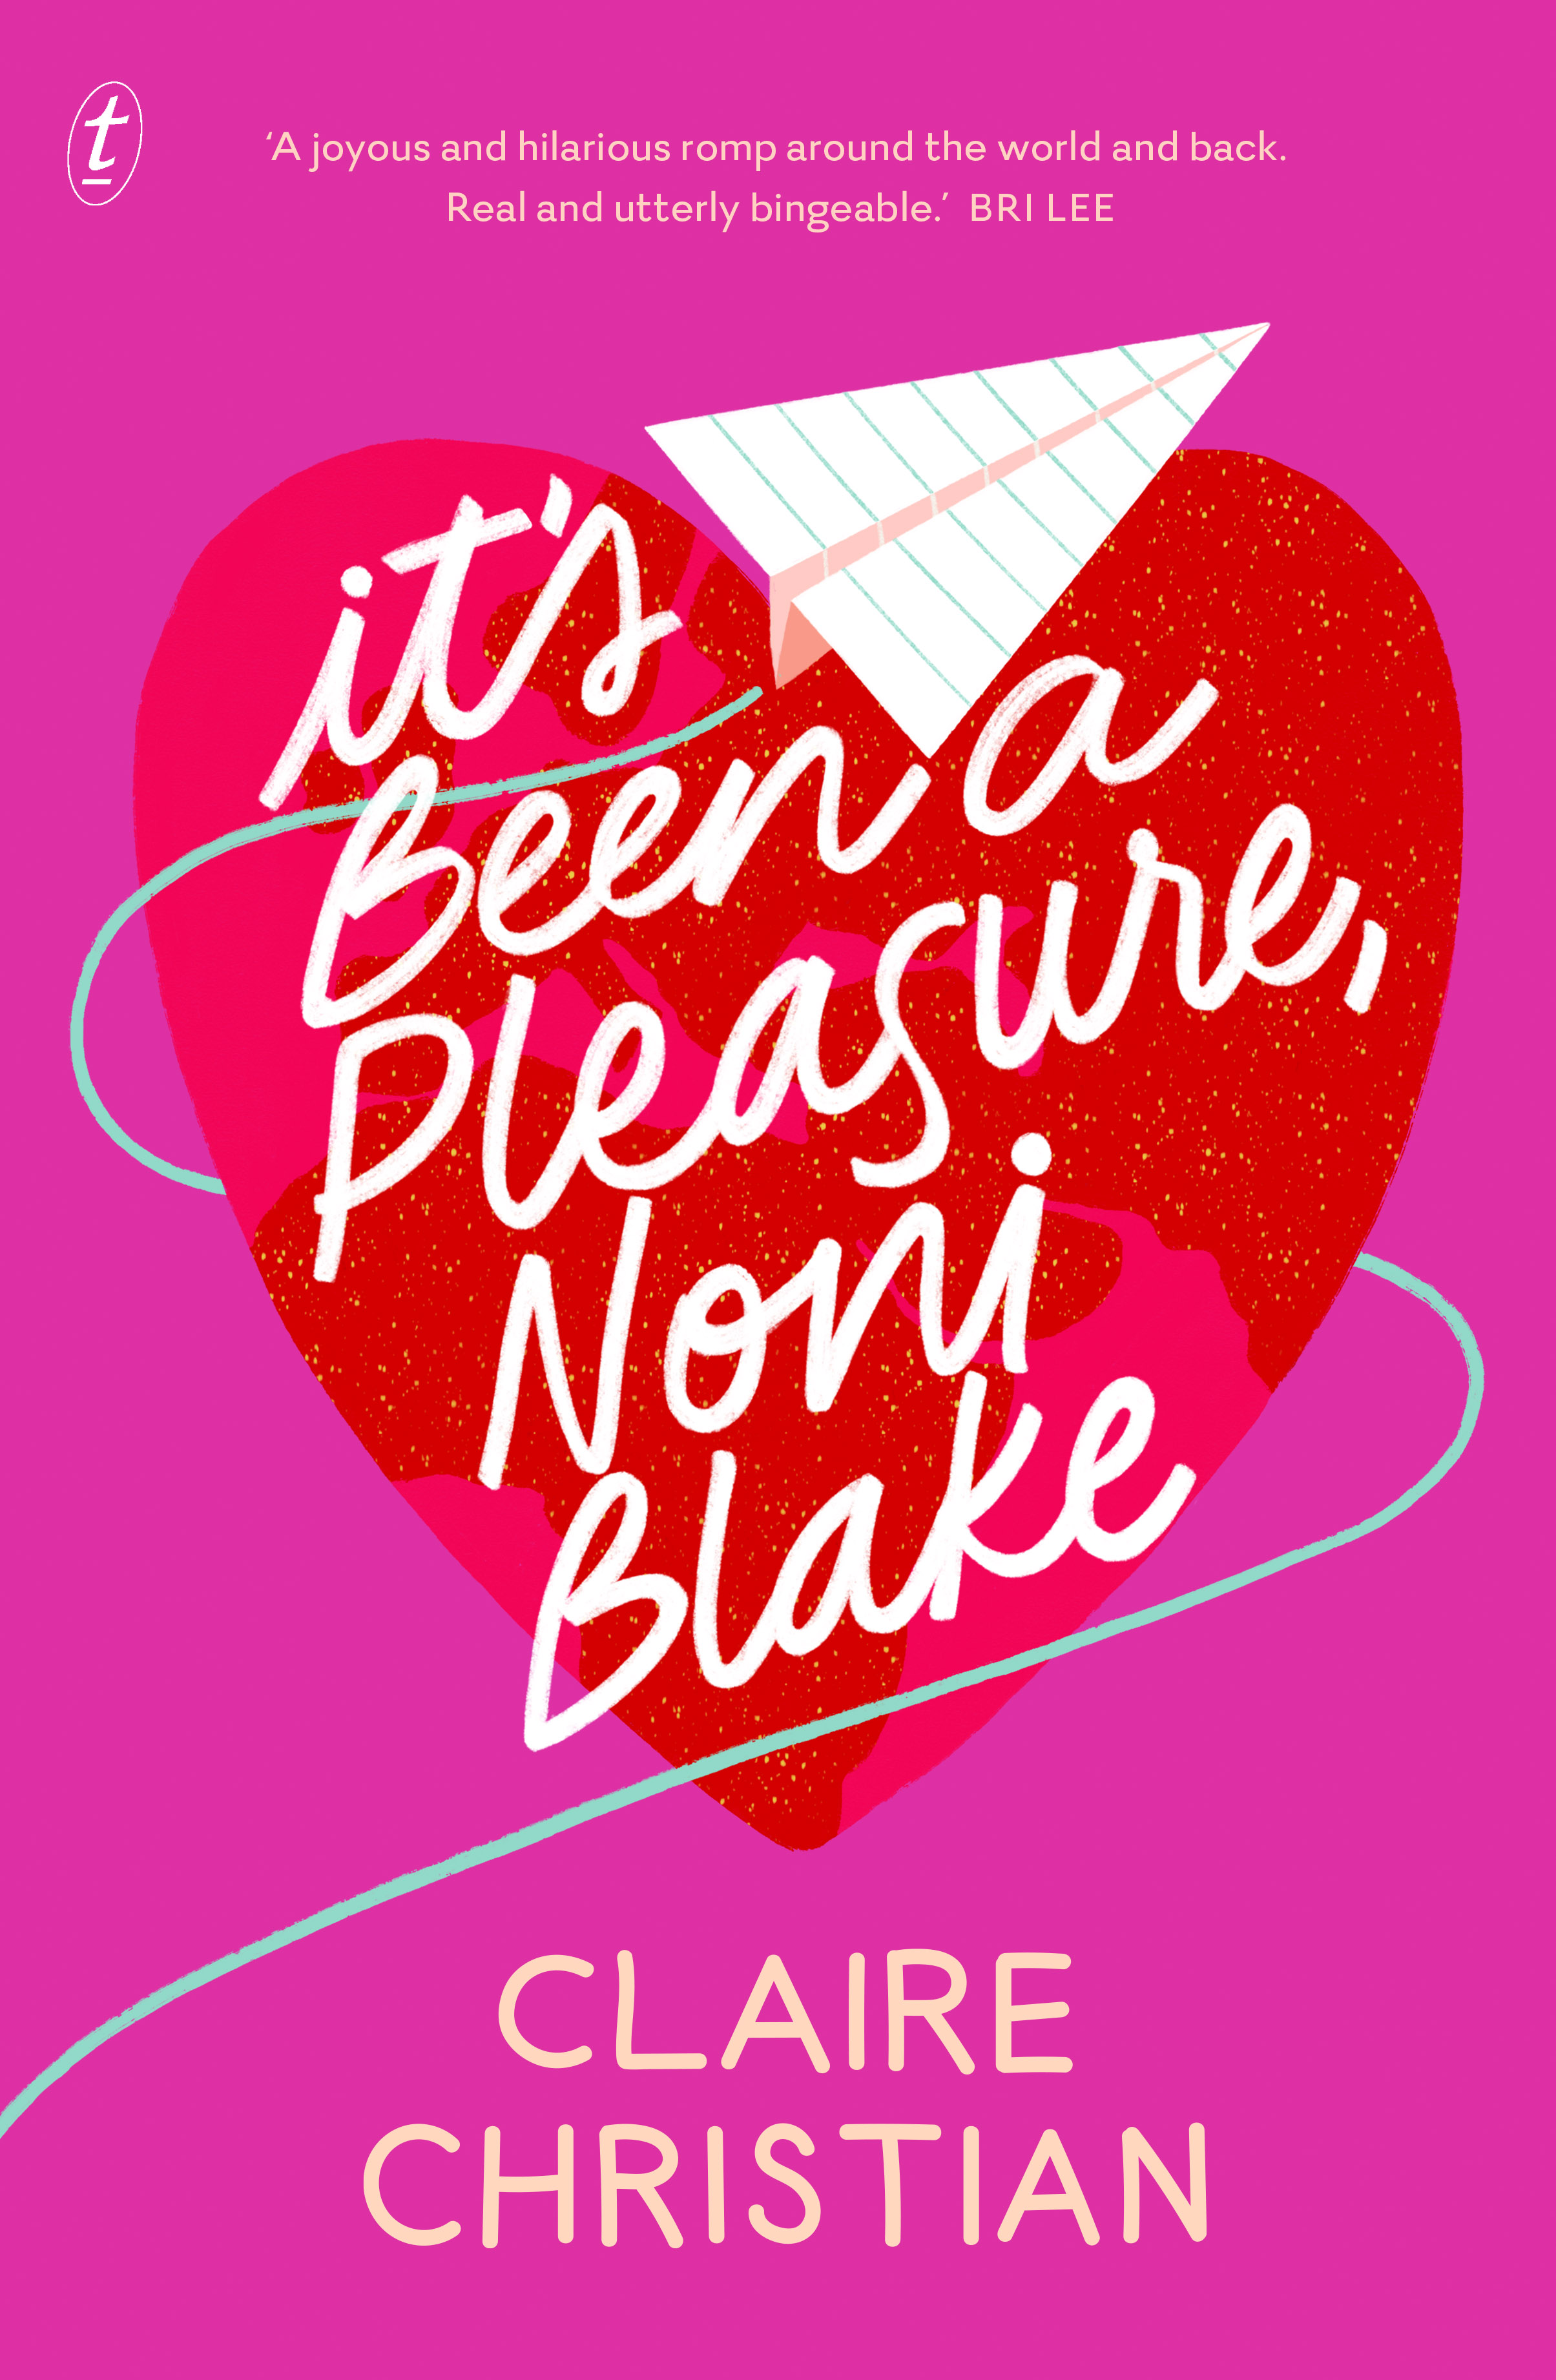 Image of the cover of Claire Christian's book, It's Been a Pleasure, Noni Blake